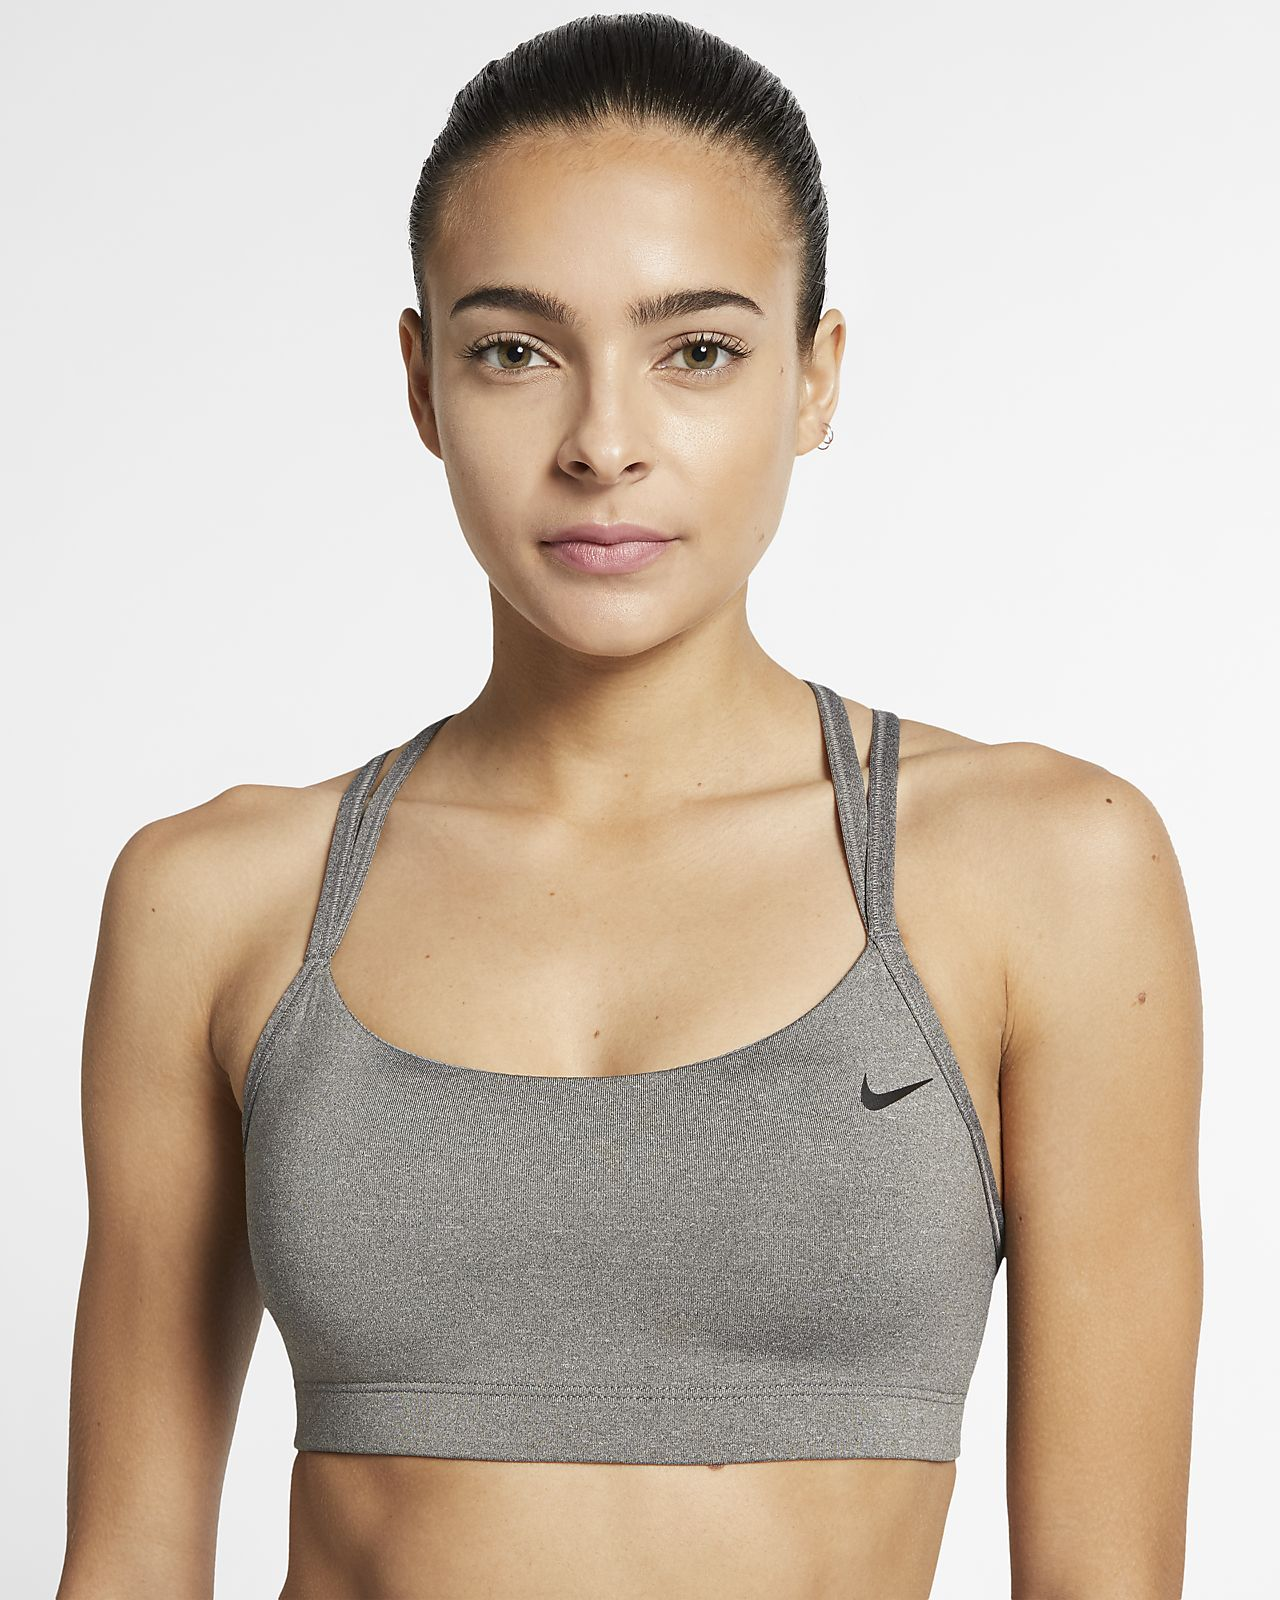 Nike Favorites Strappy Women's Light Support Sports Bra